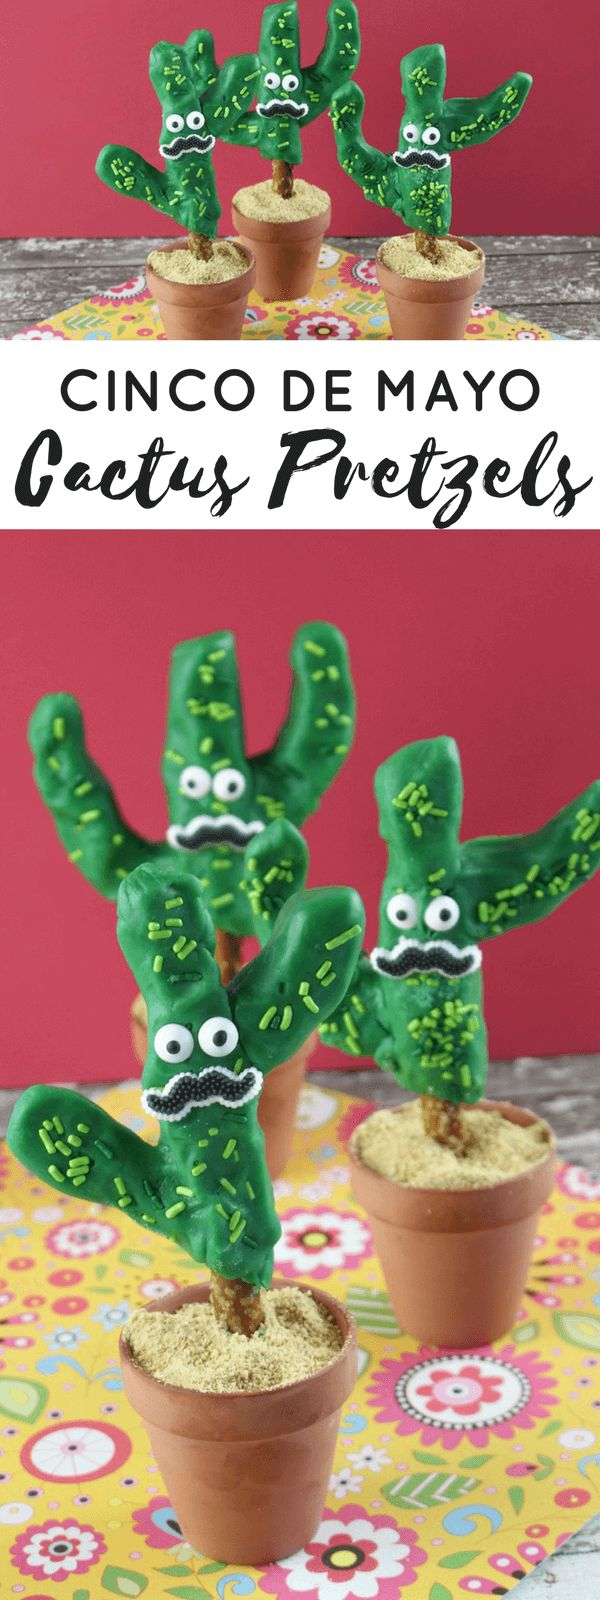 Not only are these cactus pretzels a tasty treat, but they will also add a beautiful touch to your Cinco de Mayo table. Of course, these aren't just for Cinco de Mayo. Cacti are super trendy this year. These would be awesome for any get together with the girls. You could make these and decorate your table with them for a girls' night in. You could also decorate any summer get together with these. Just leave off the mustaches and eyes.